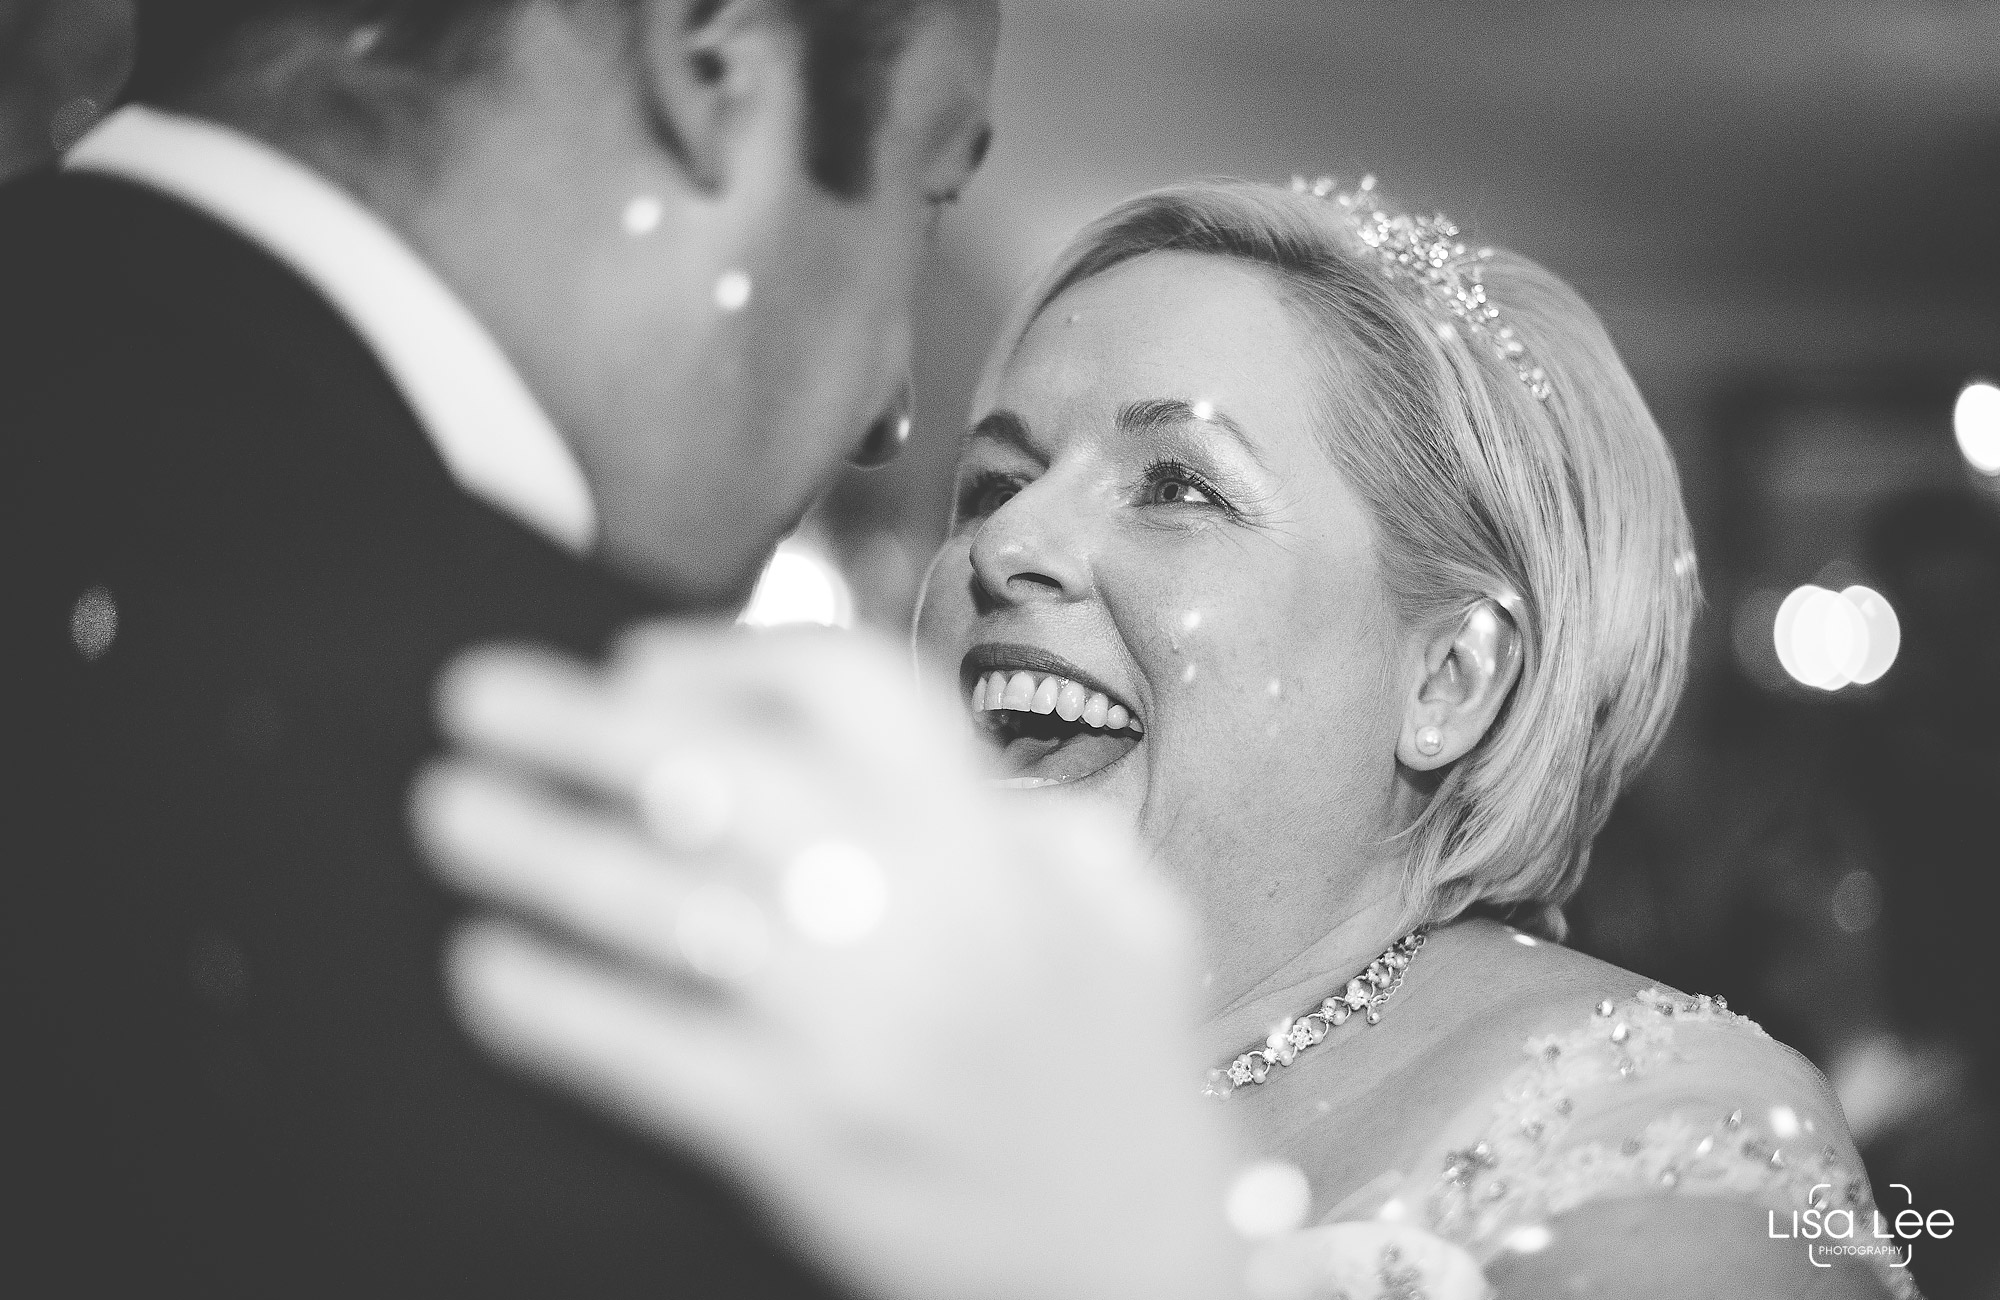 lisa-lee-wedding-photography-new-forest-dorset-dancing.jpg